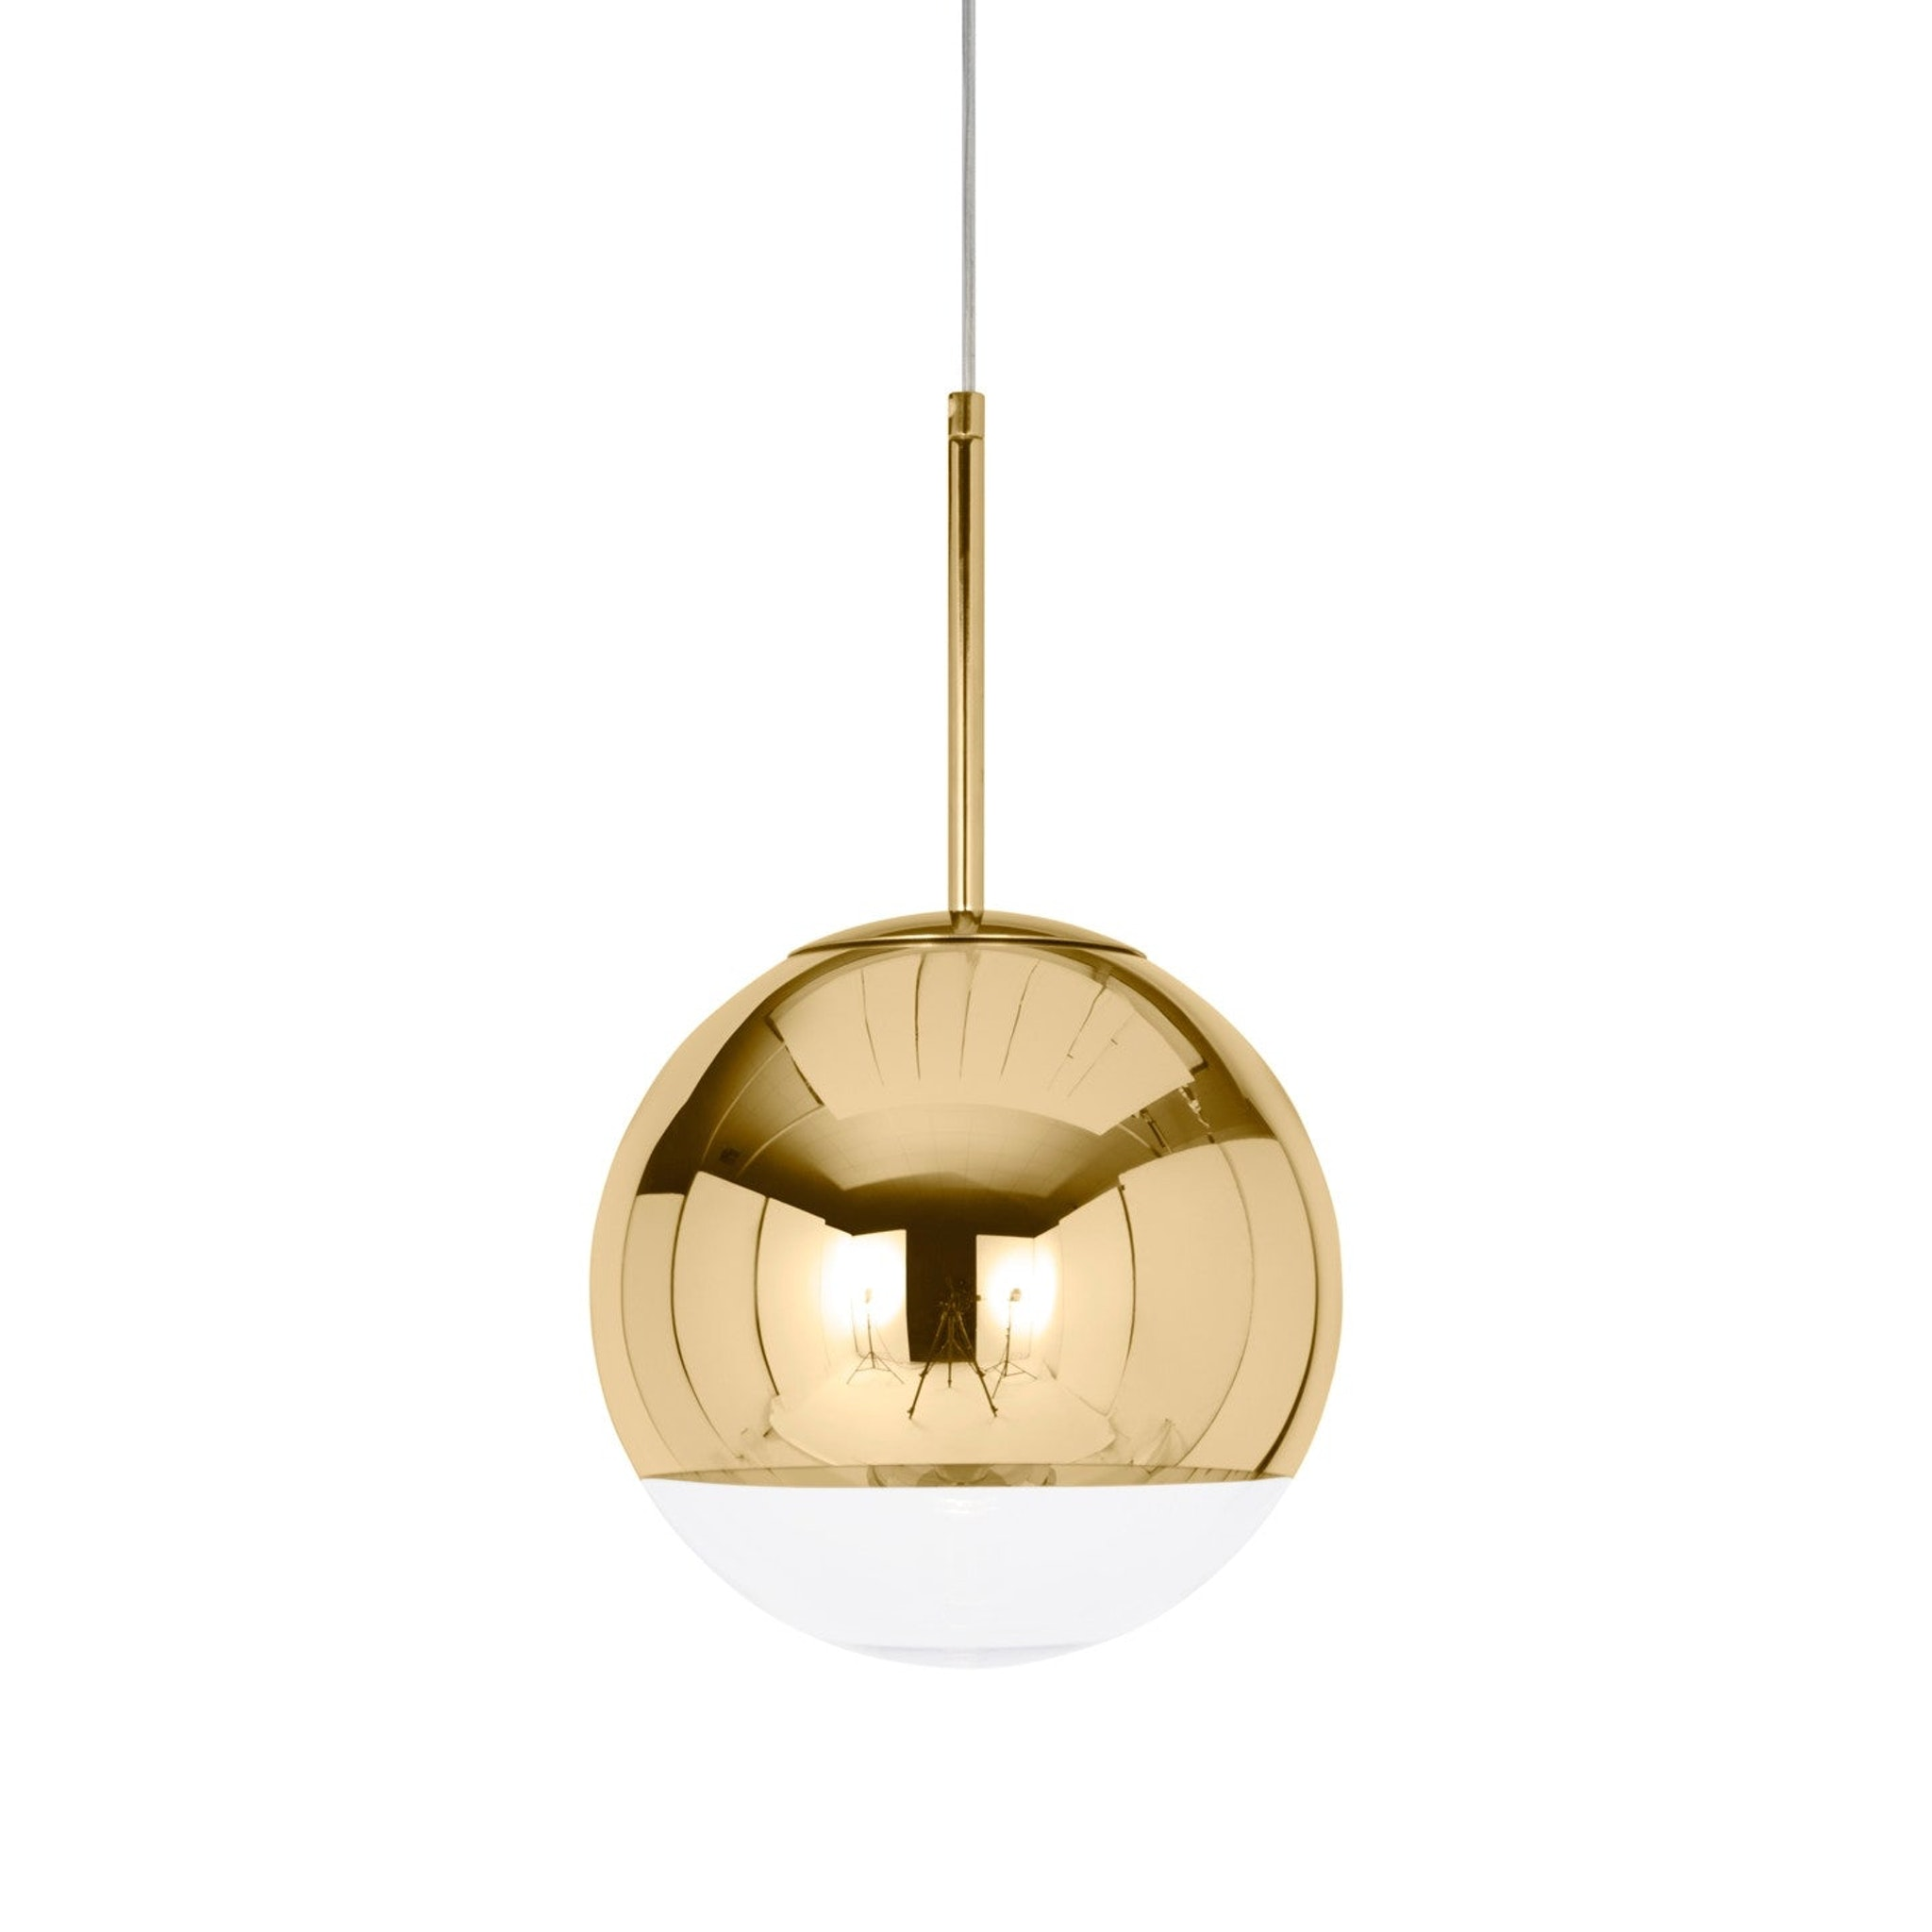 Mirror Ball Gold Pendant by Tom Dixon